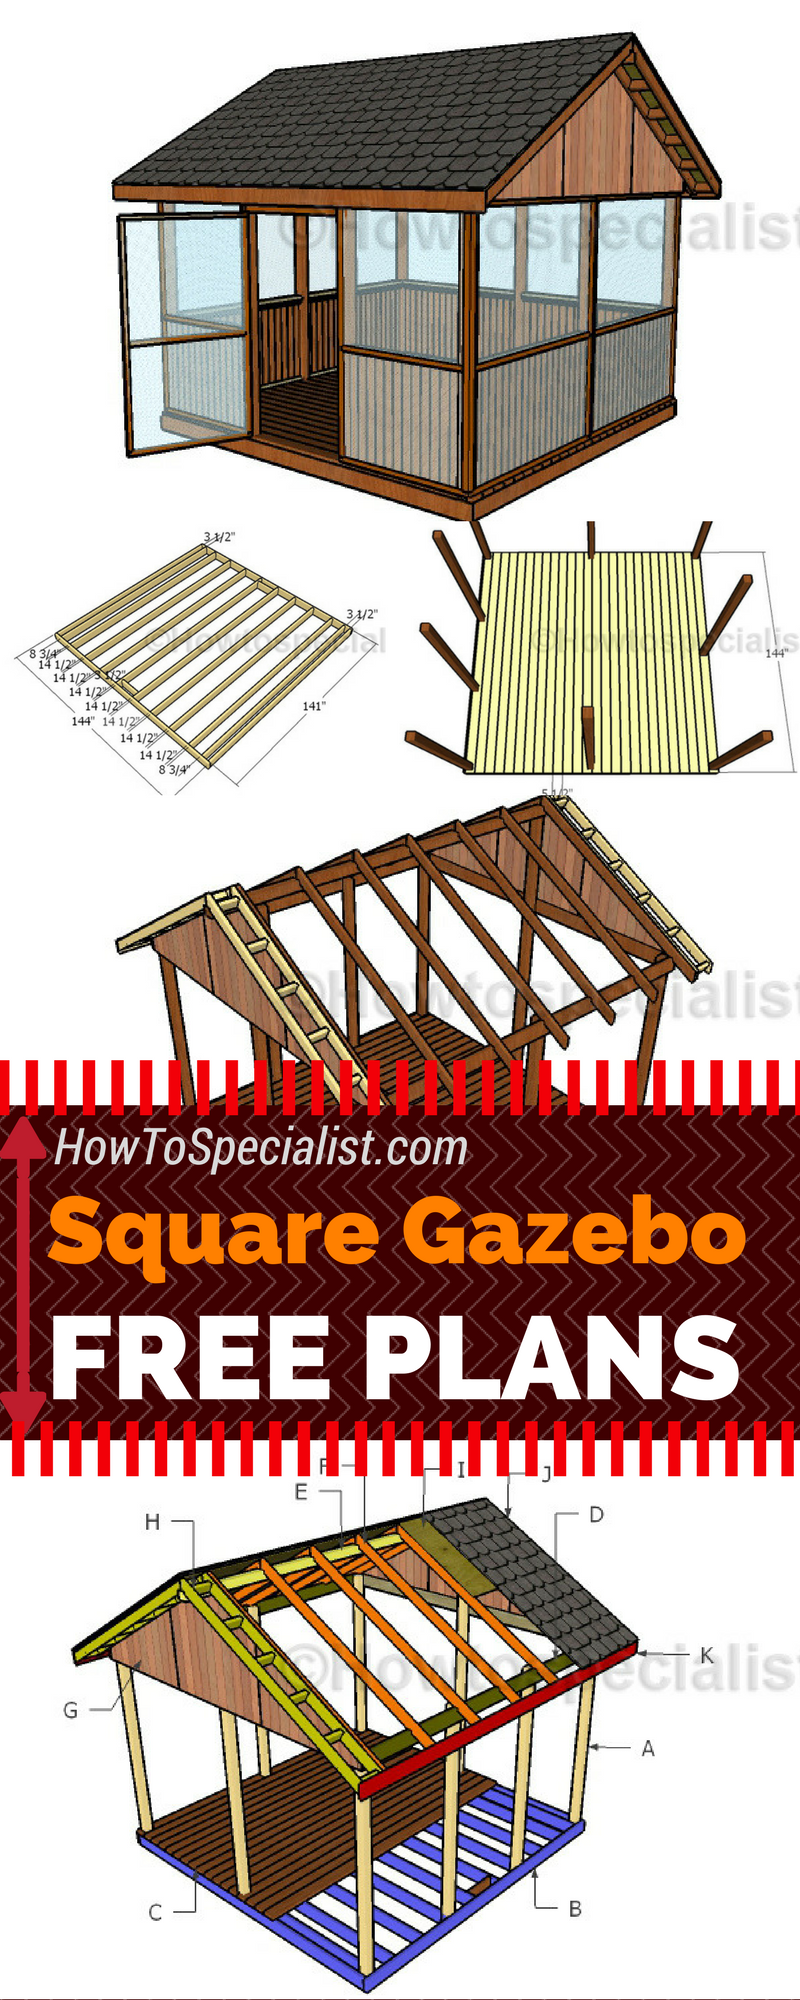 small resolution of it is super easy to build a screened gazebo for your backyard check out my free square gazebo plans and follow the step by step instructions diy gazebo